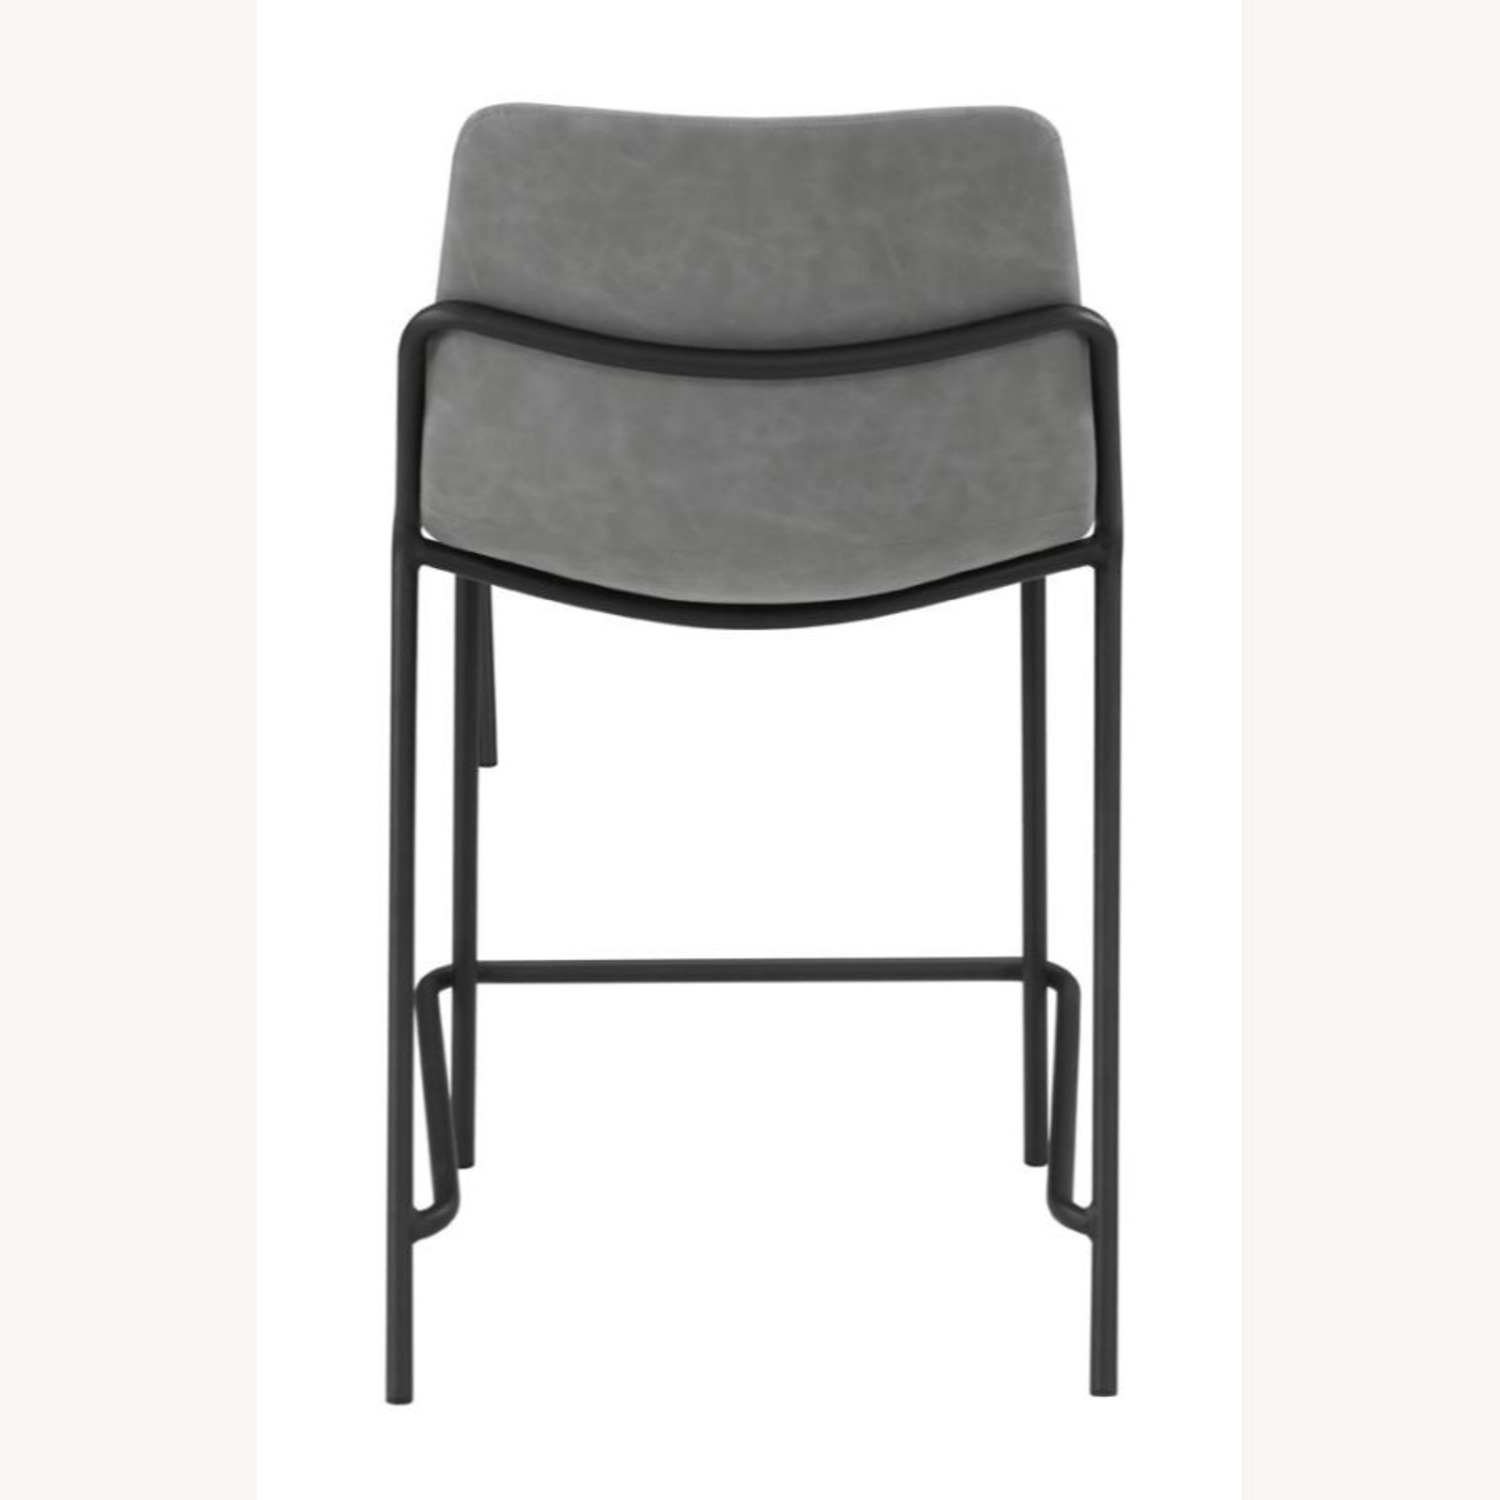 Counter Stool In Grey Leather & Black Metal Finish - image-2